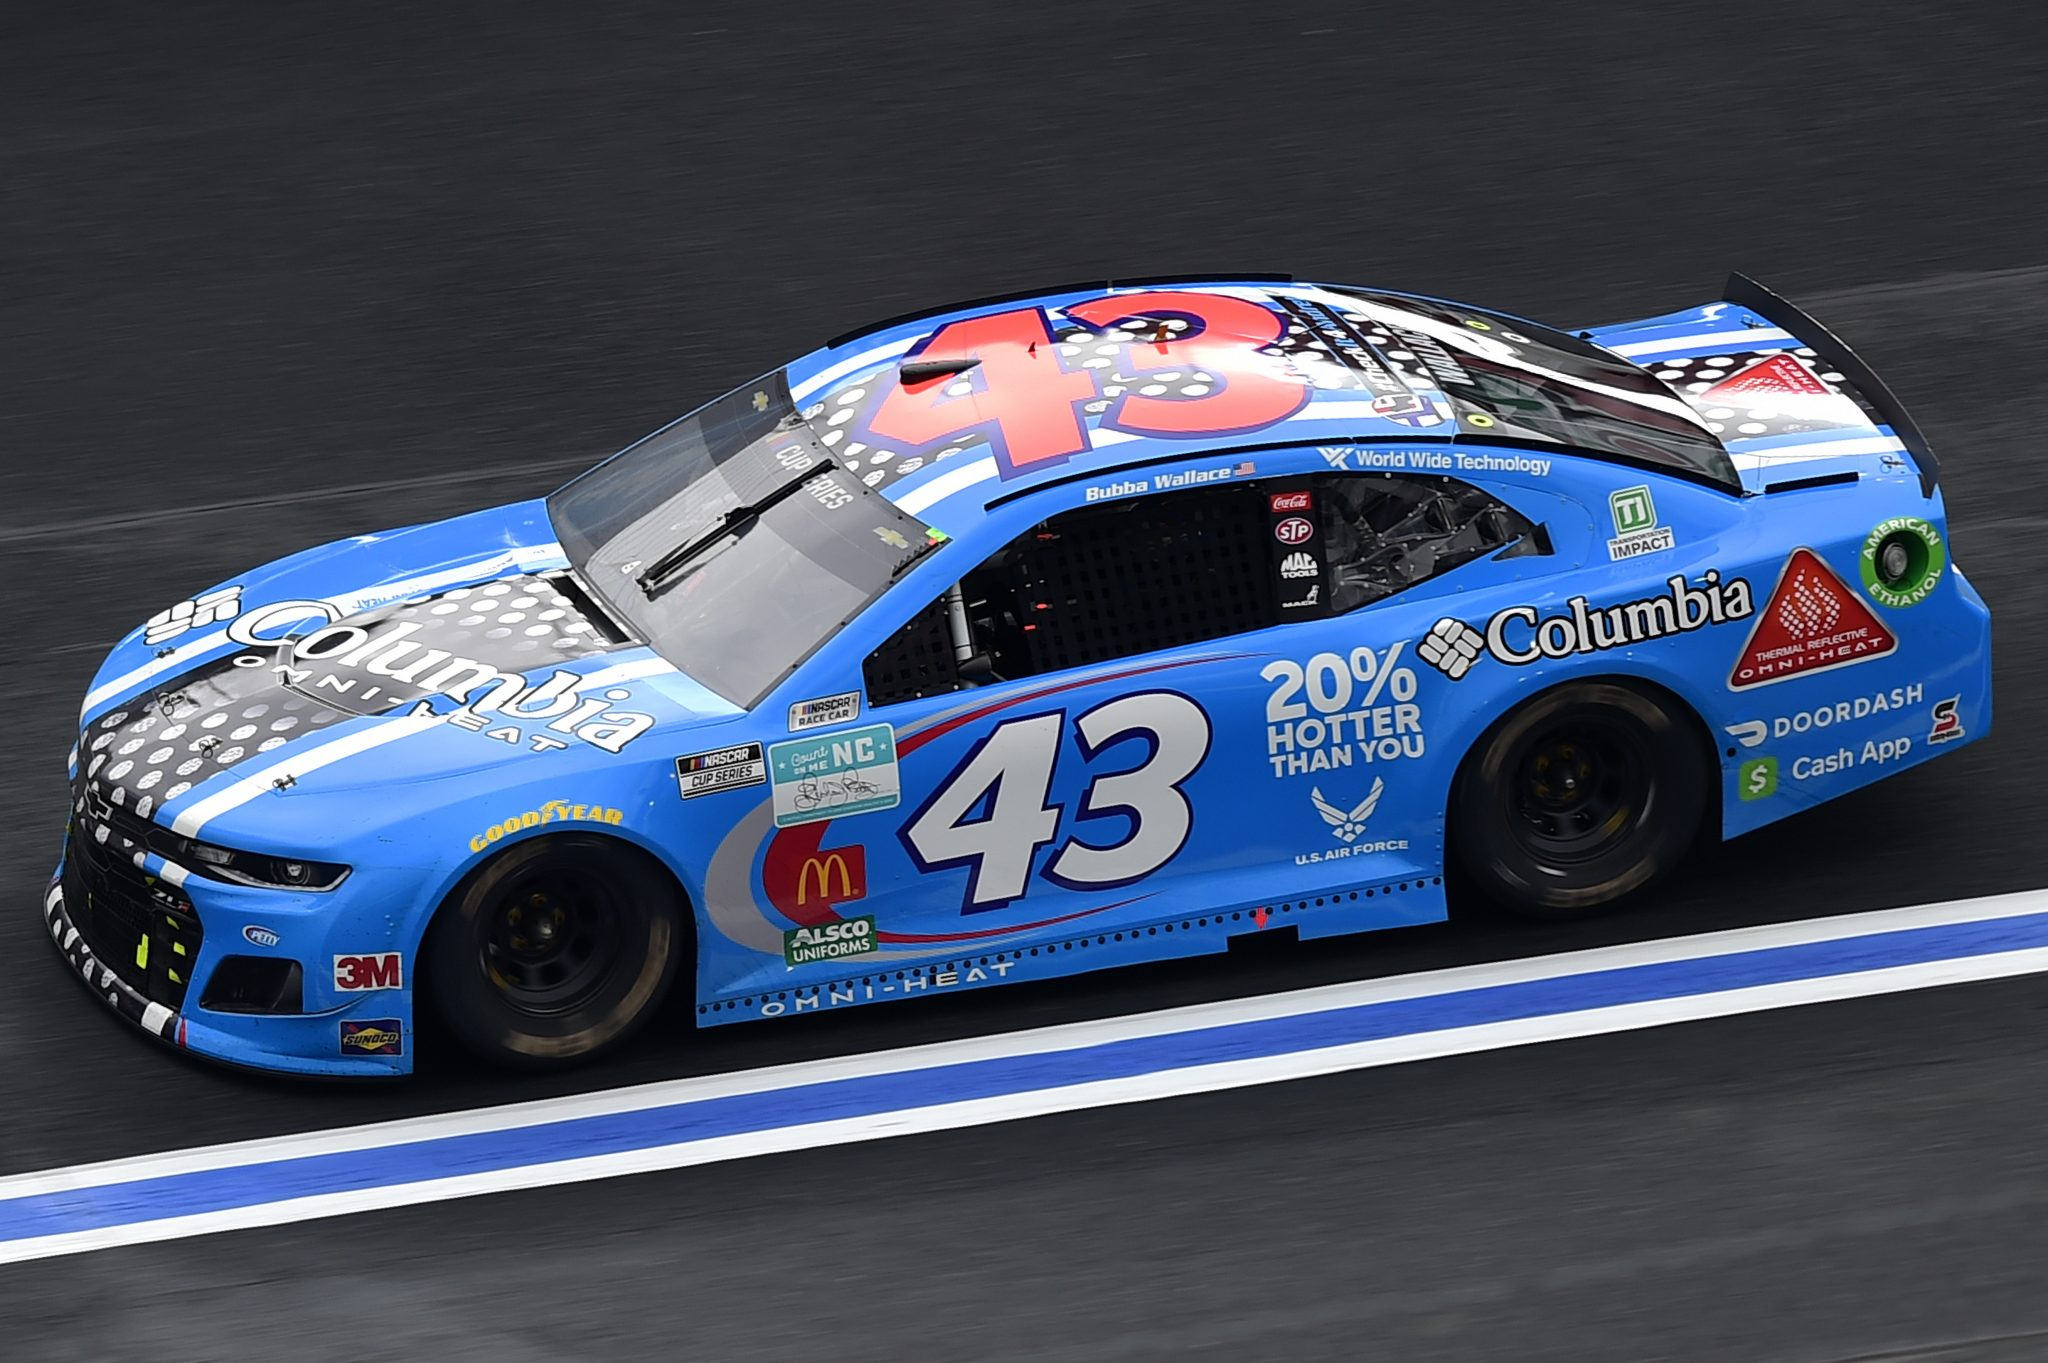 CONCORD, NORTH CAROLINA - OCTOBER 11: Bubba Wallace, driver of the #43 Columbia Omni-Heat Chevrolet, drives during the NASCAR Cup Series Bank of America ROVAL 400 at Charlotte Motor Speedway on October 11, 2020 in Concord, North Carolina. (Photo by Jared C. Tilton/Getty Images) | Getty Images